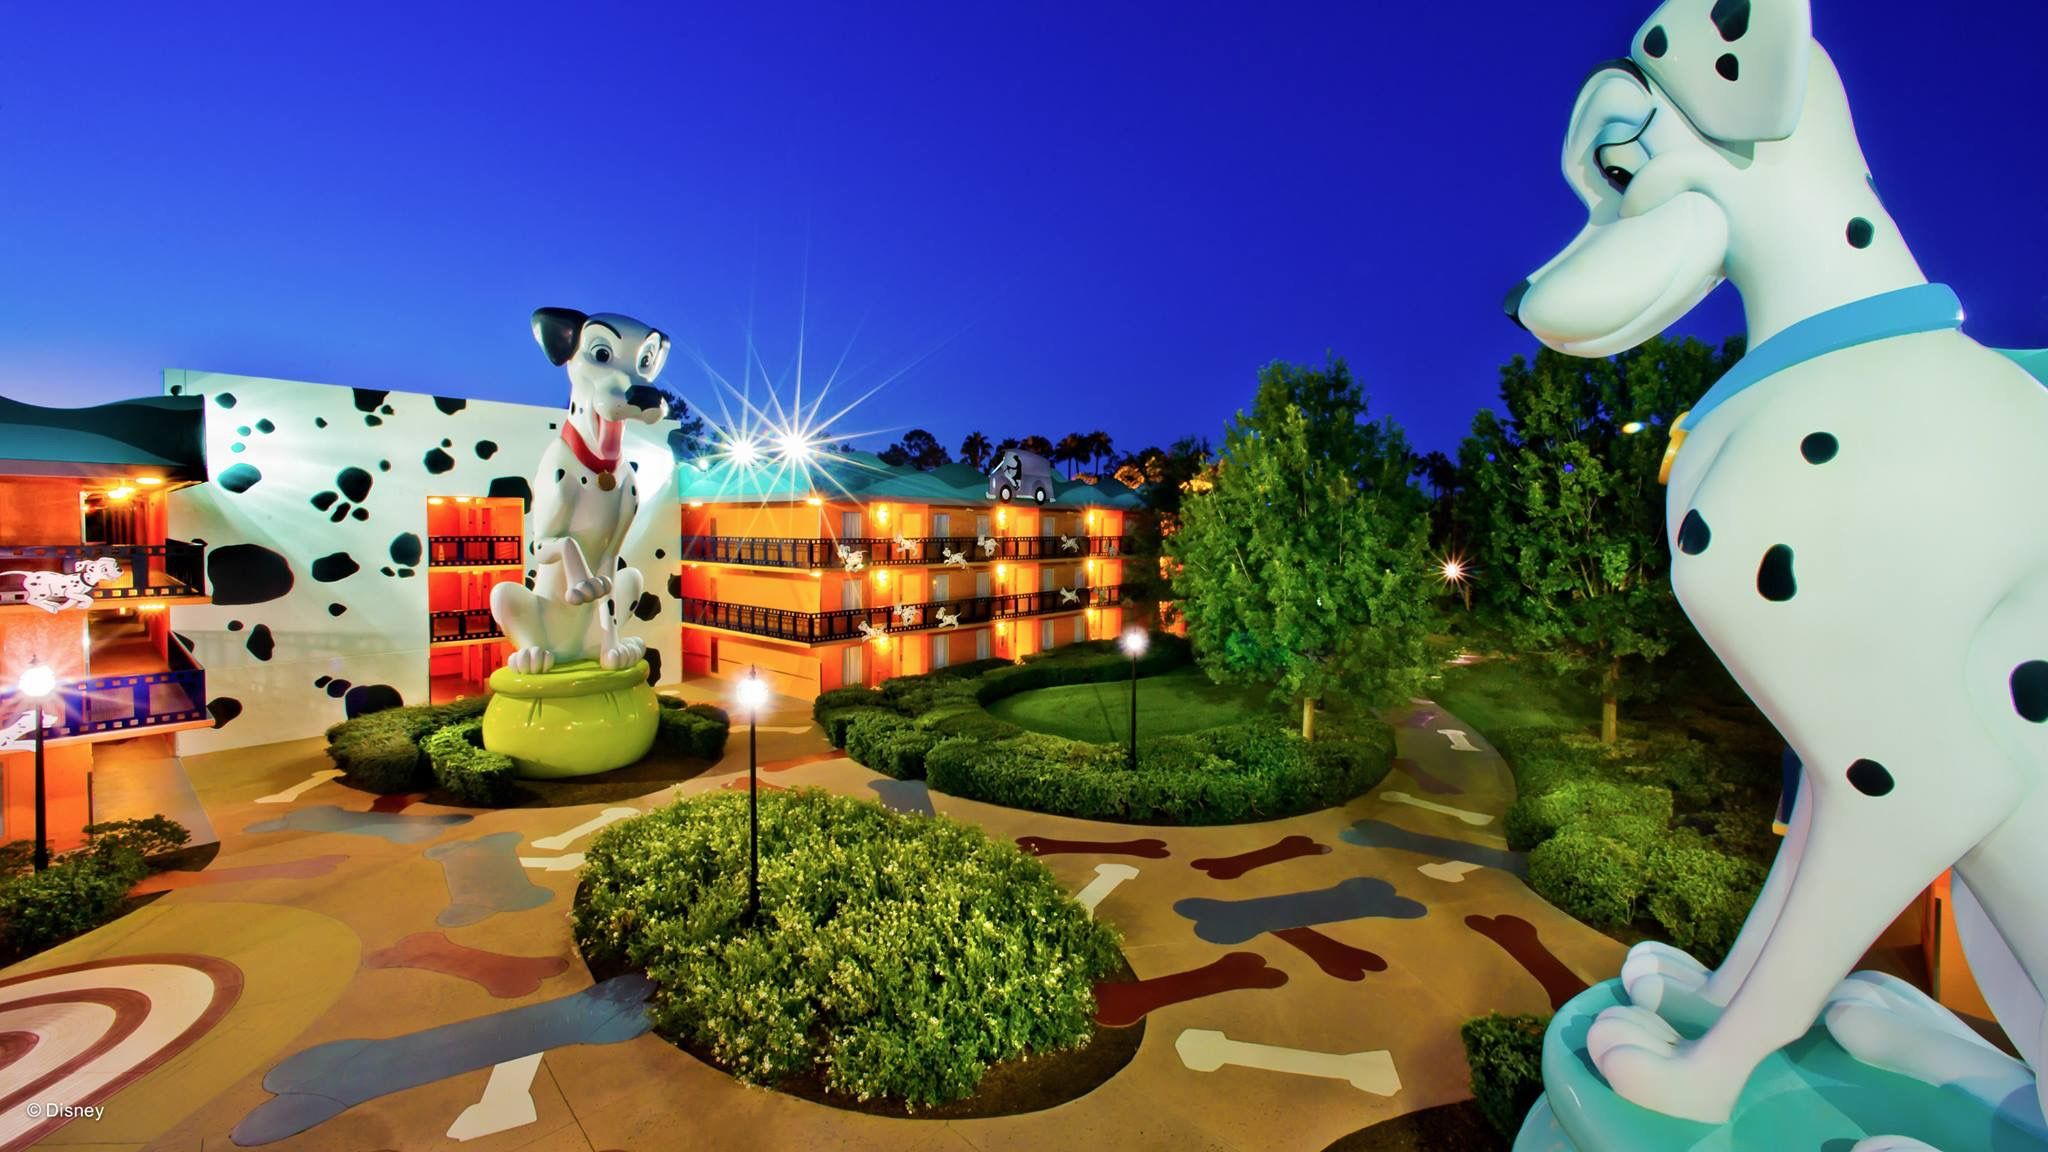 Pin by Tammy Atwell on Disney VacationsTicket 2 Travel